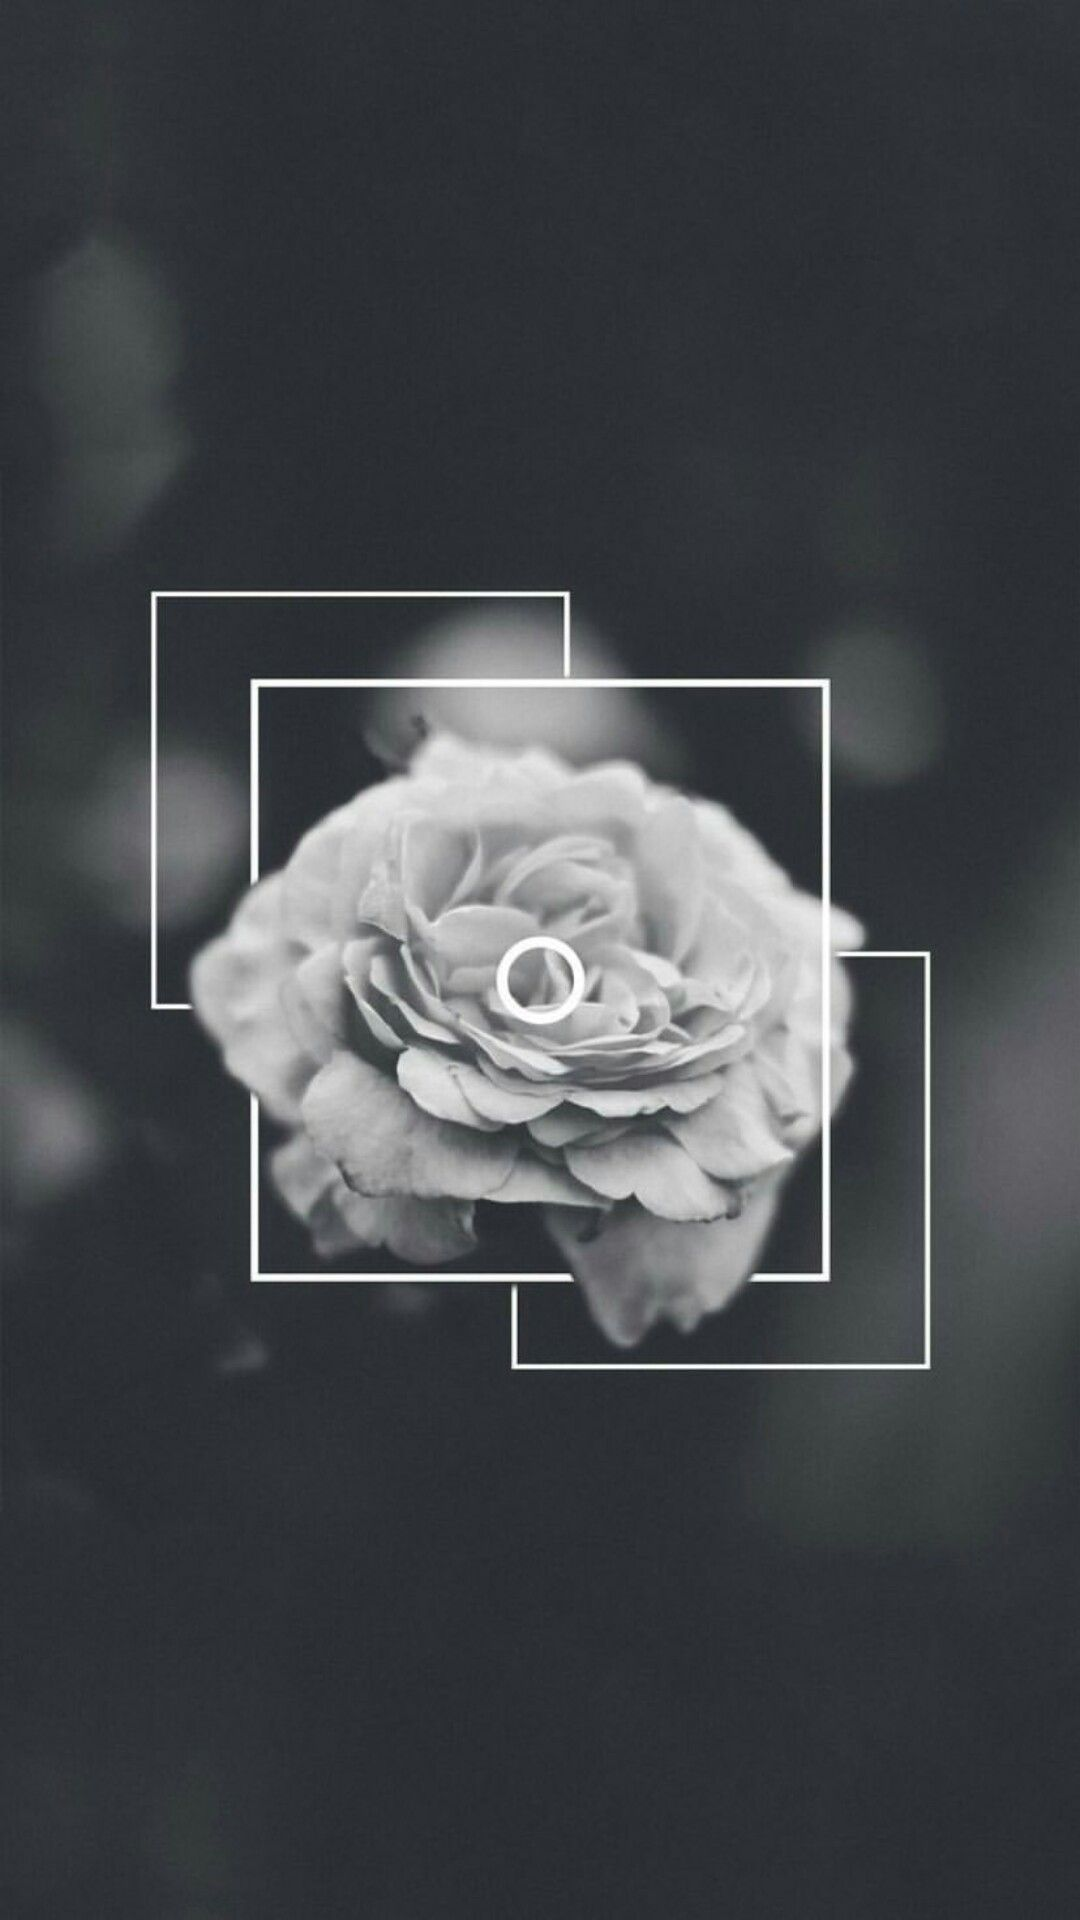 Black Wallpaper Backgrounds Iphone Wallpapers Ipod Lock Screen Floral Hipster Art